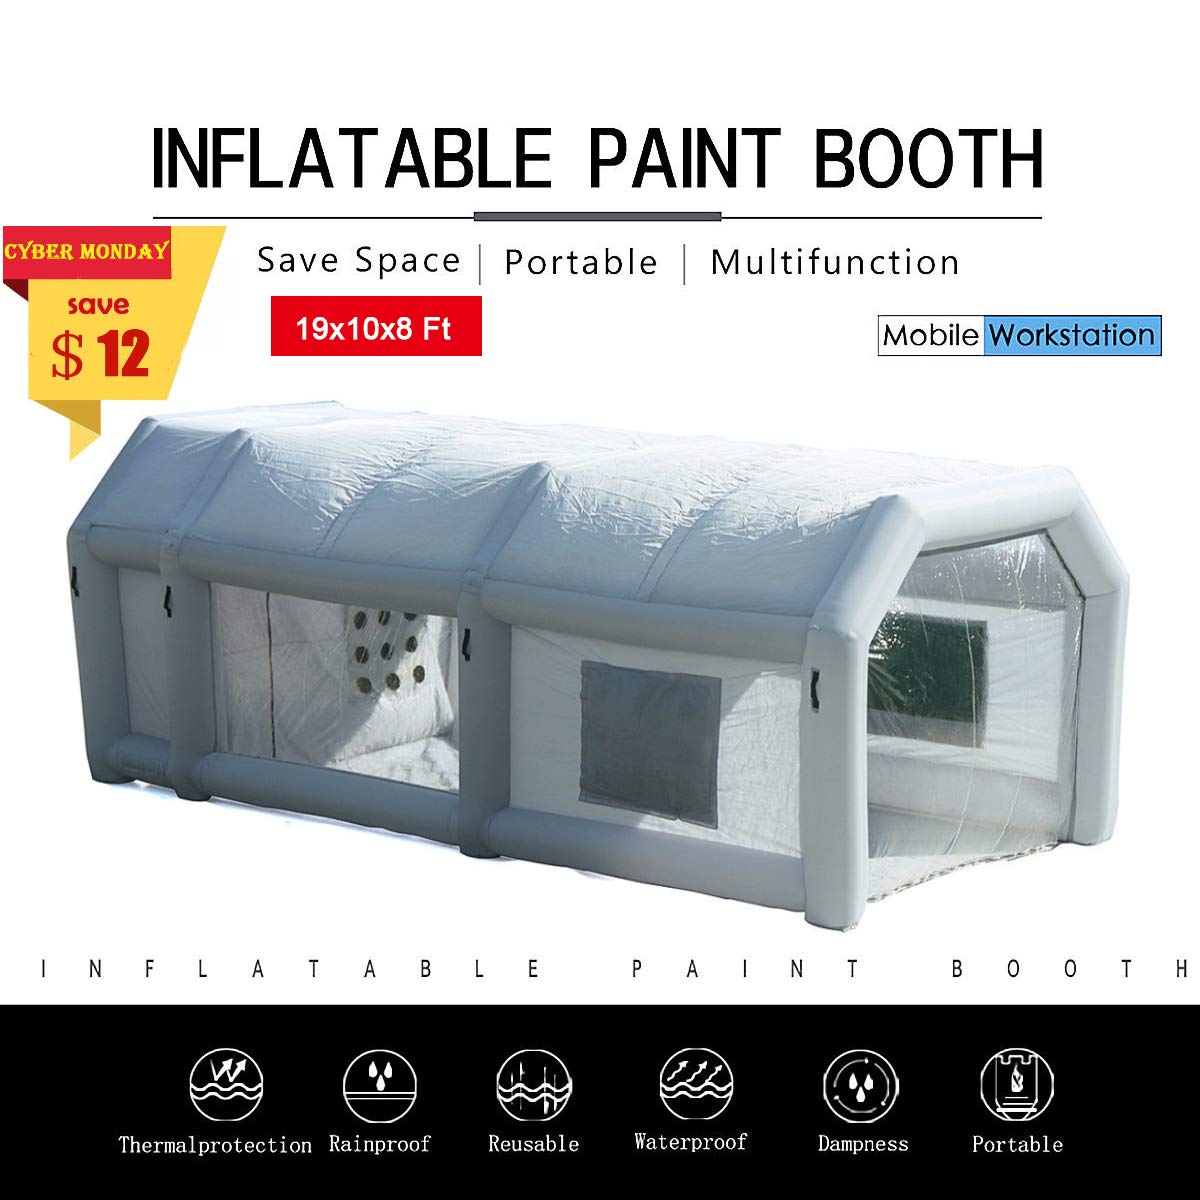 SILIVN 26x13x10Ft Mobile Inflatable Paint Spray Booth Tent Portable Car Workstation (with 2 Blower) by SILIVN